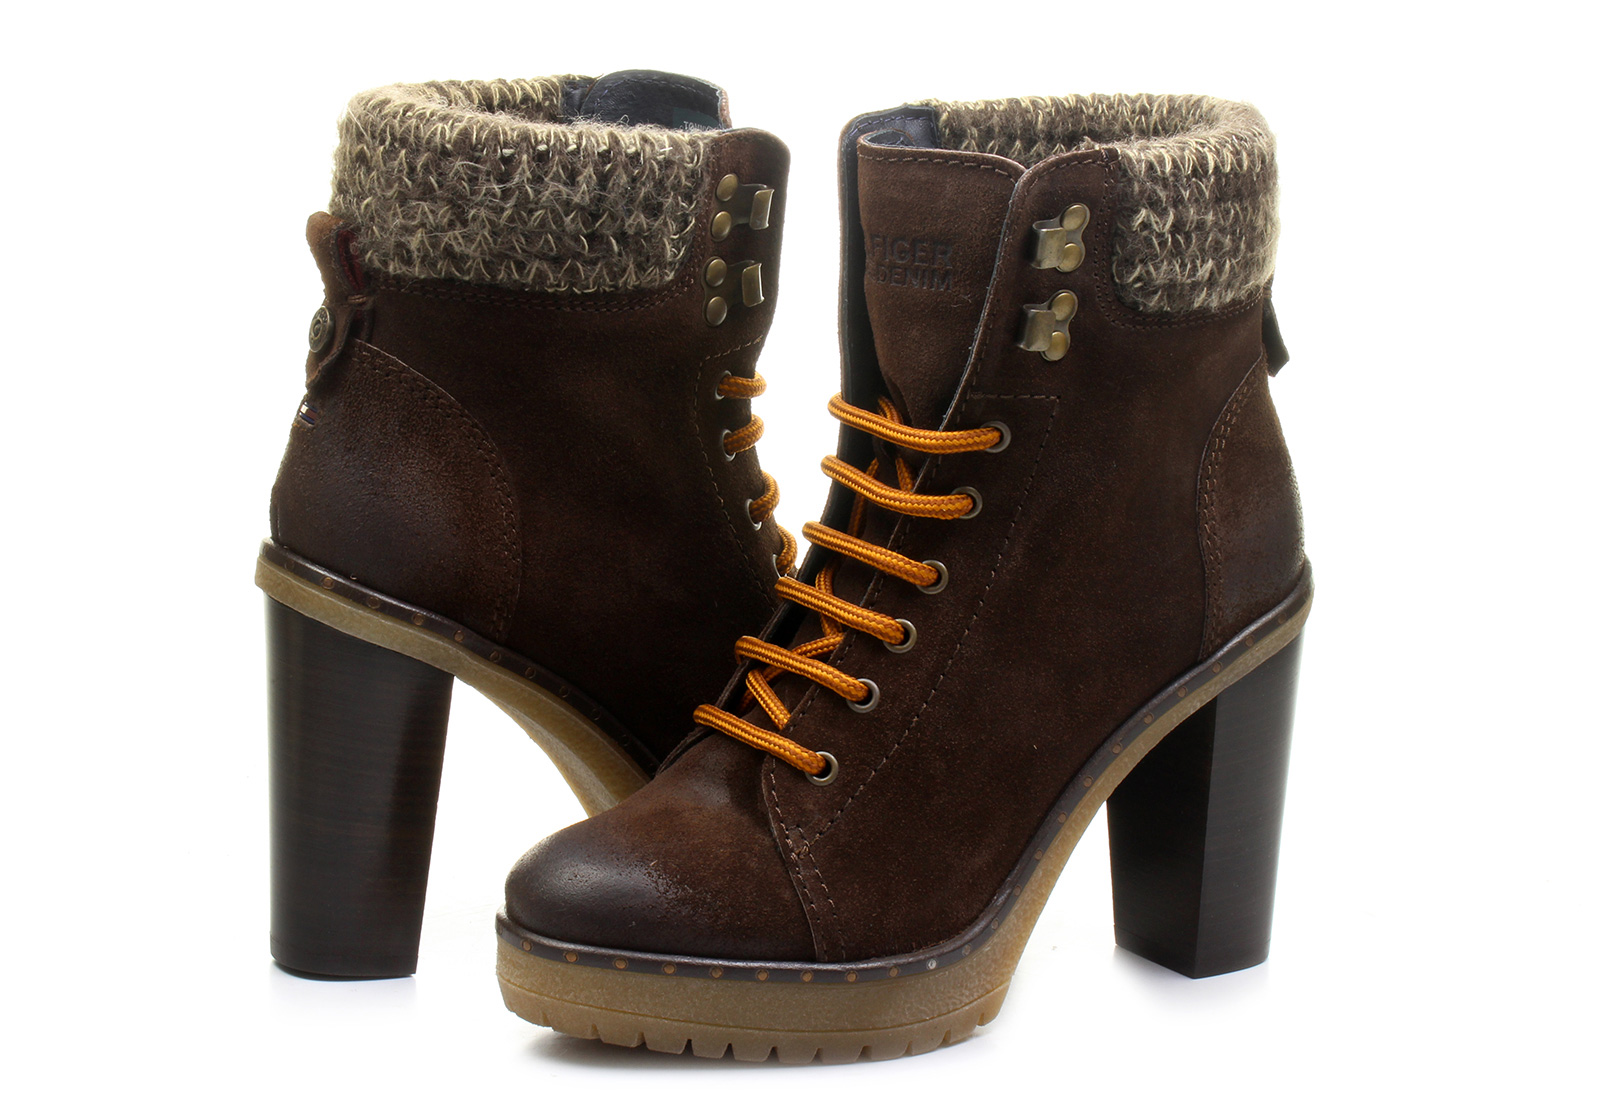 tommy hilfiger boots cleo 3b 15f 9880 212 online shop for sneakers shoes and boots. Black Bedroom Furniture Sets. Home Design Ideas